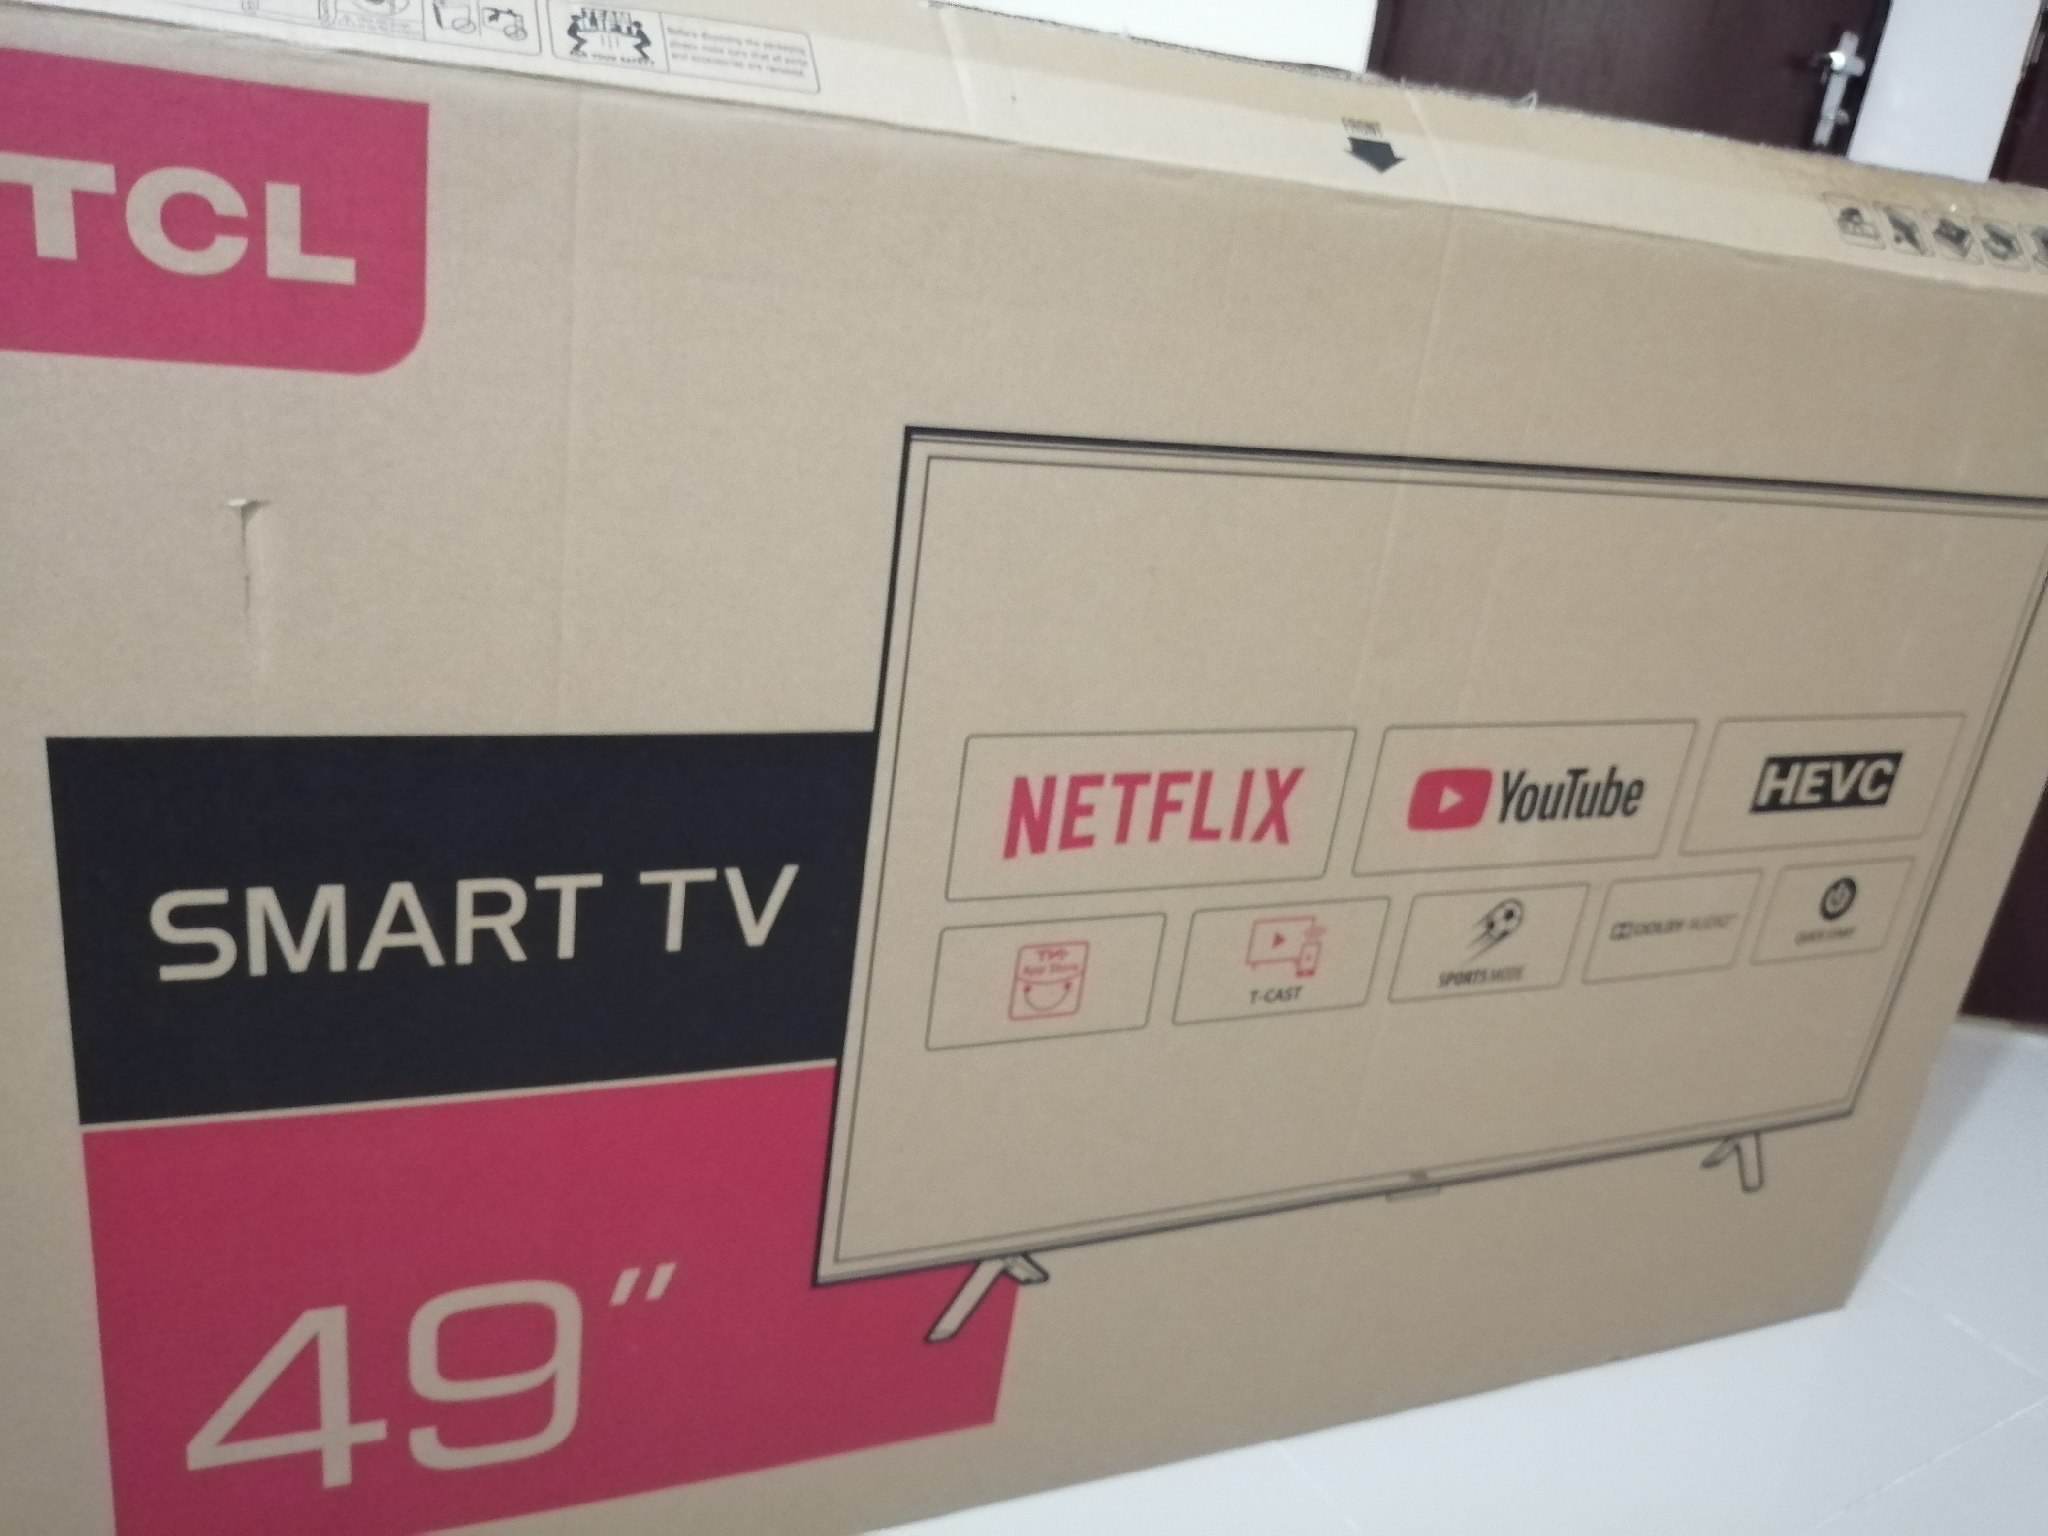 TCL smart tv 49inch with table   Qatar Living